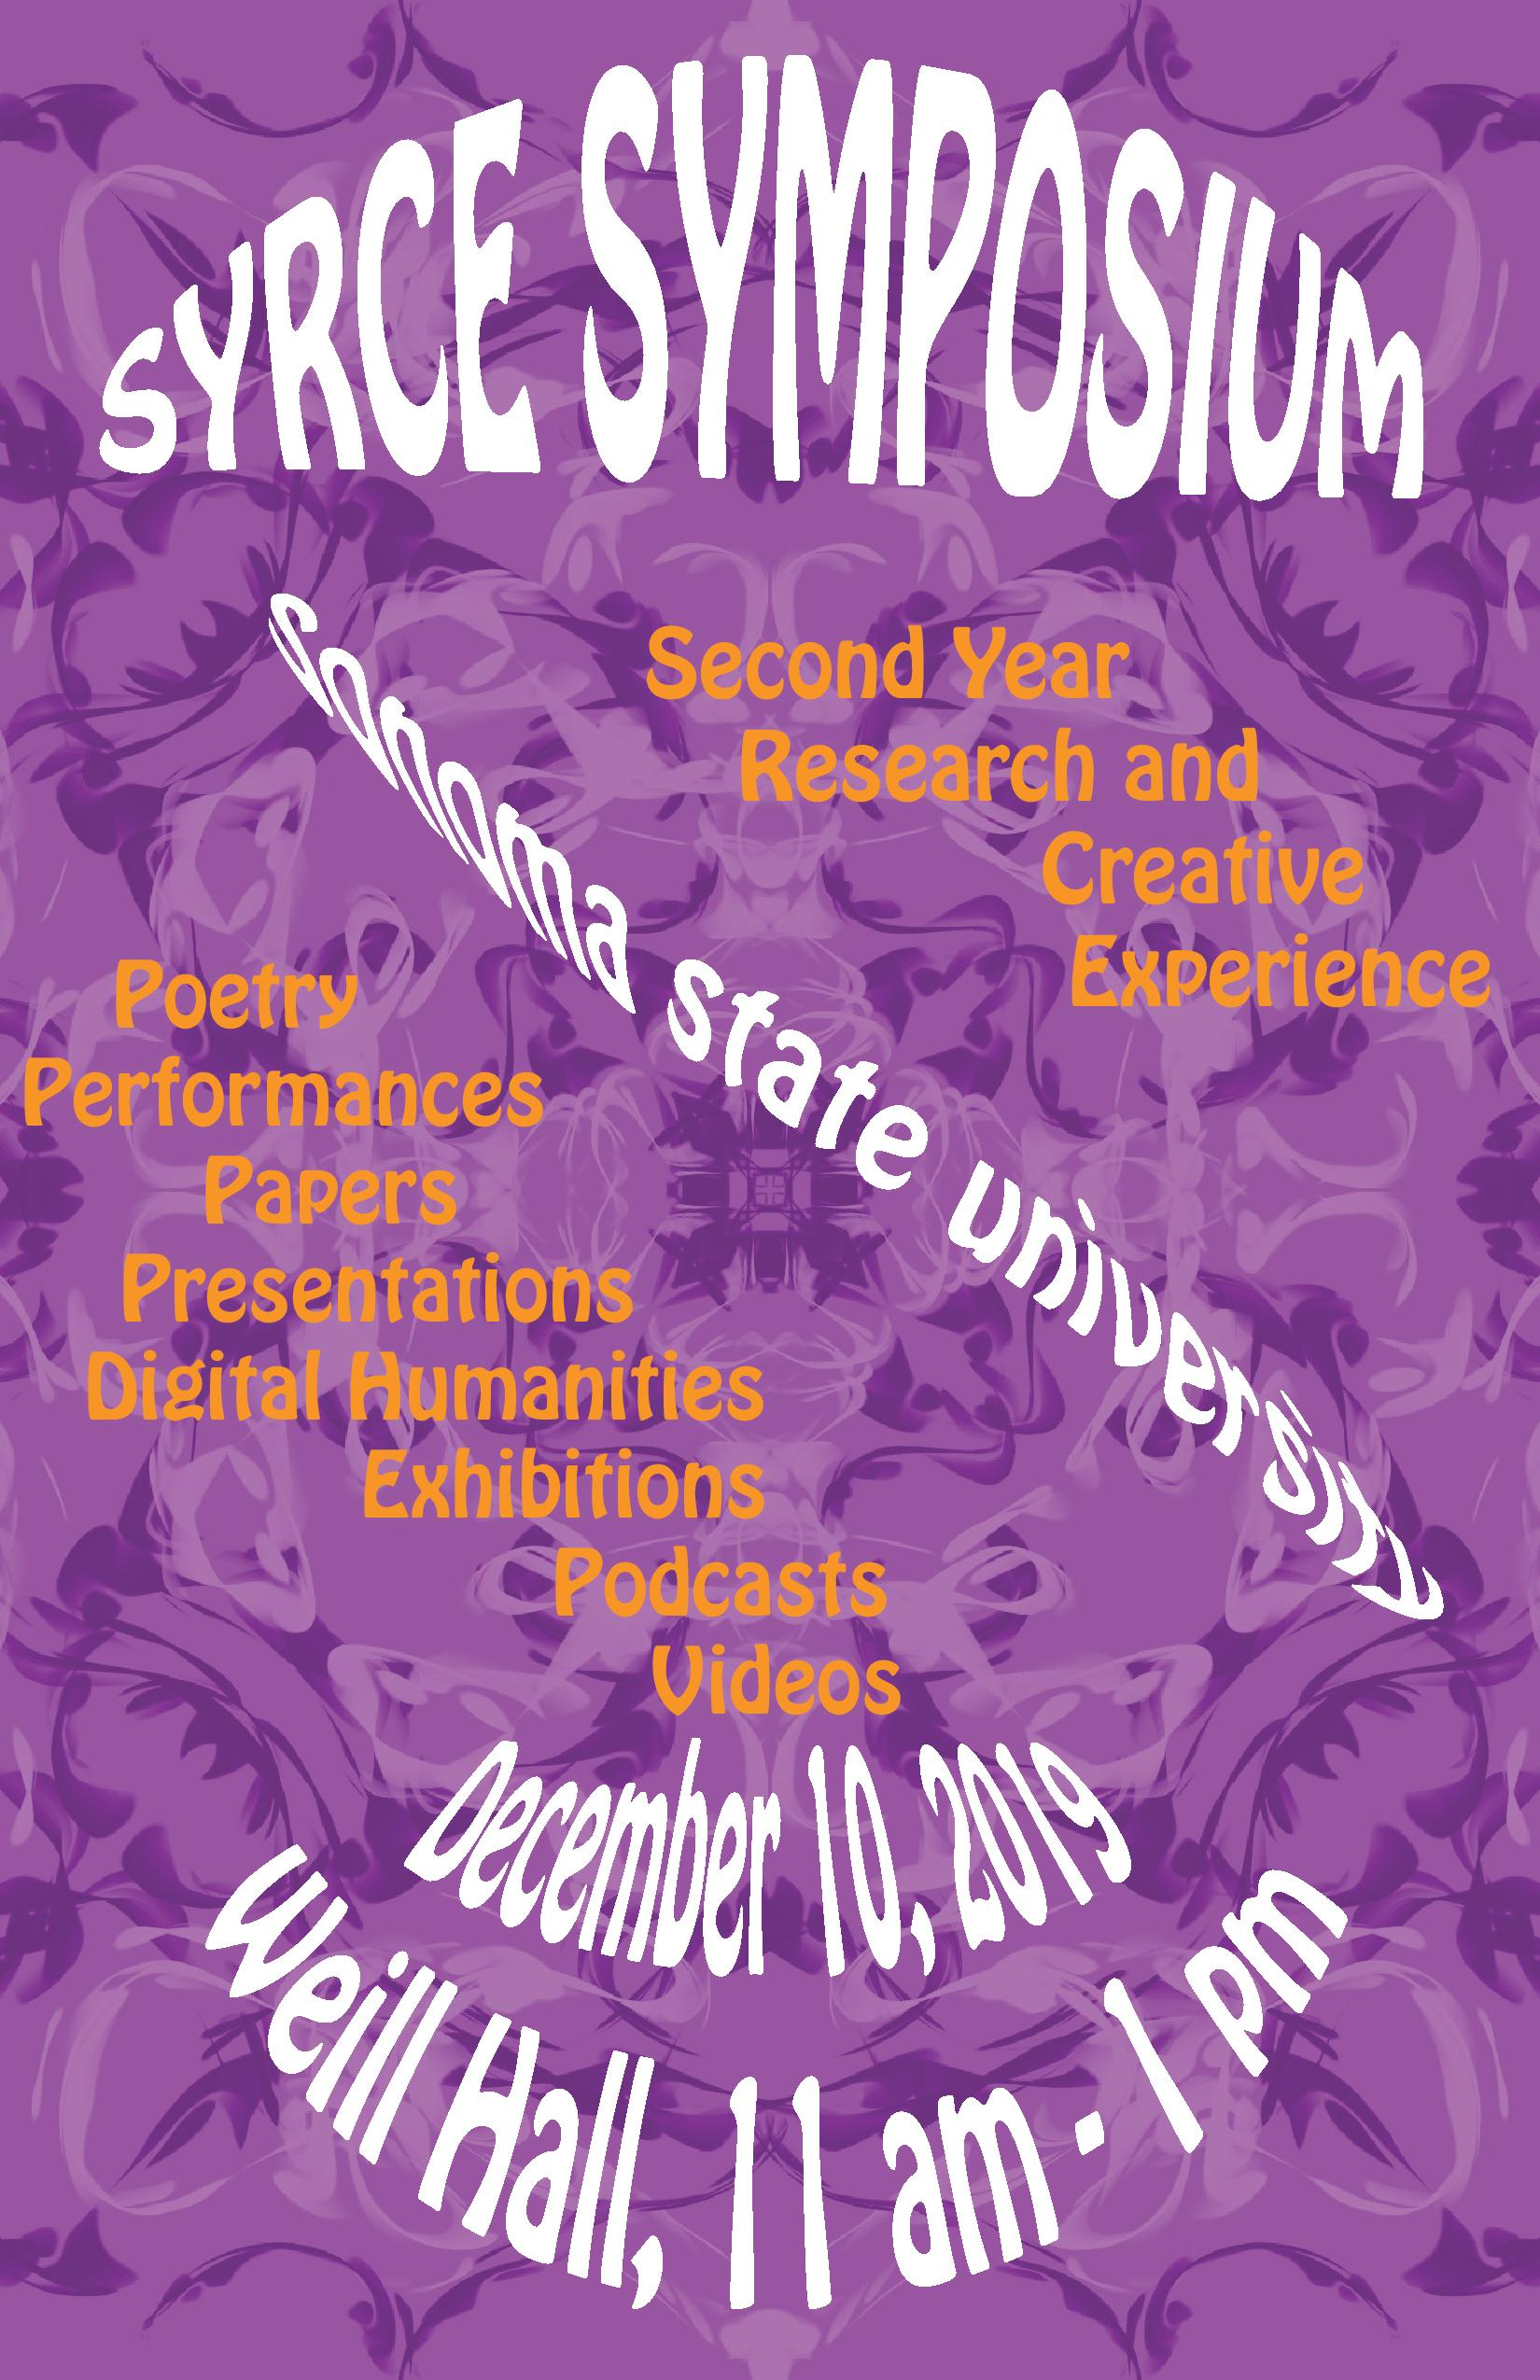 SYRCE Poster Fall 2019 - click to zoom